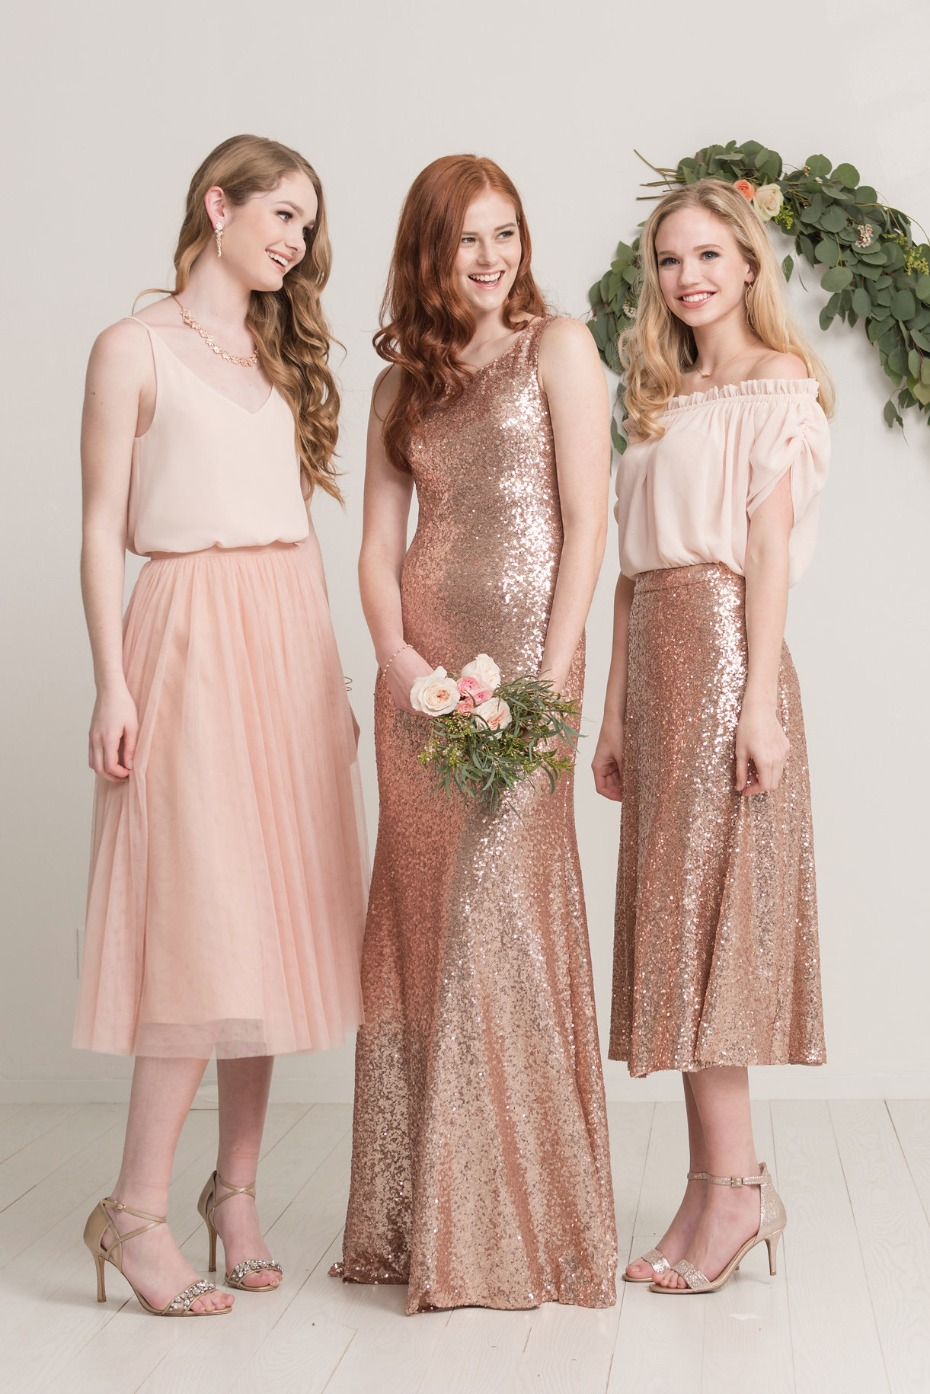 Mix and match bridesmaid dresses from Love Tanya